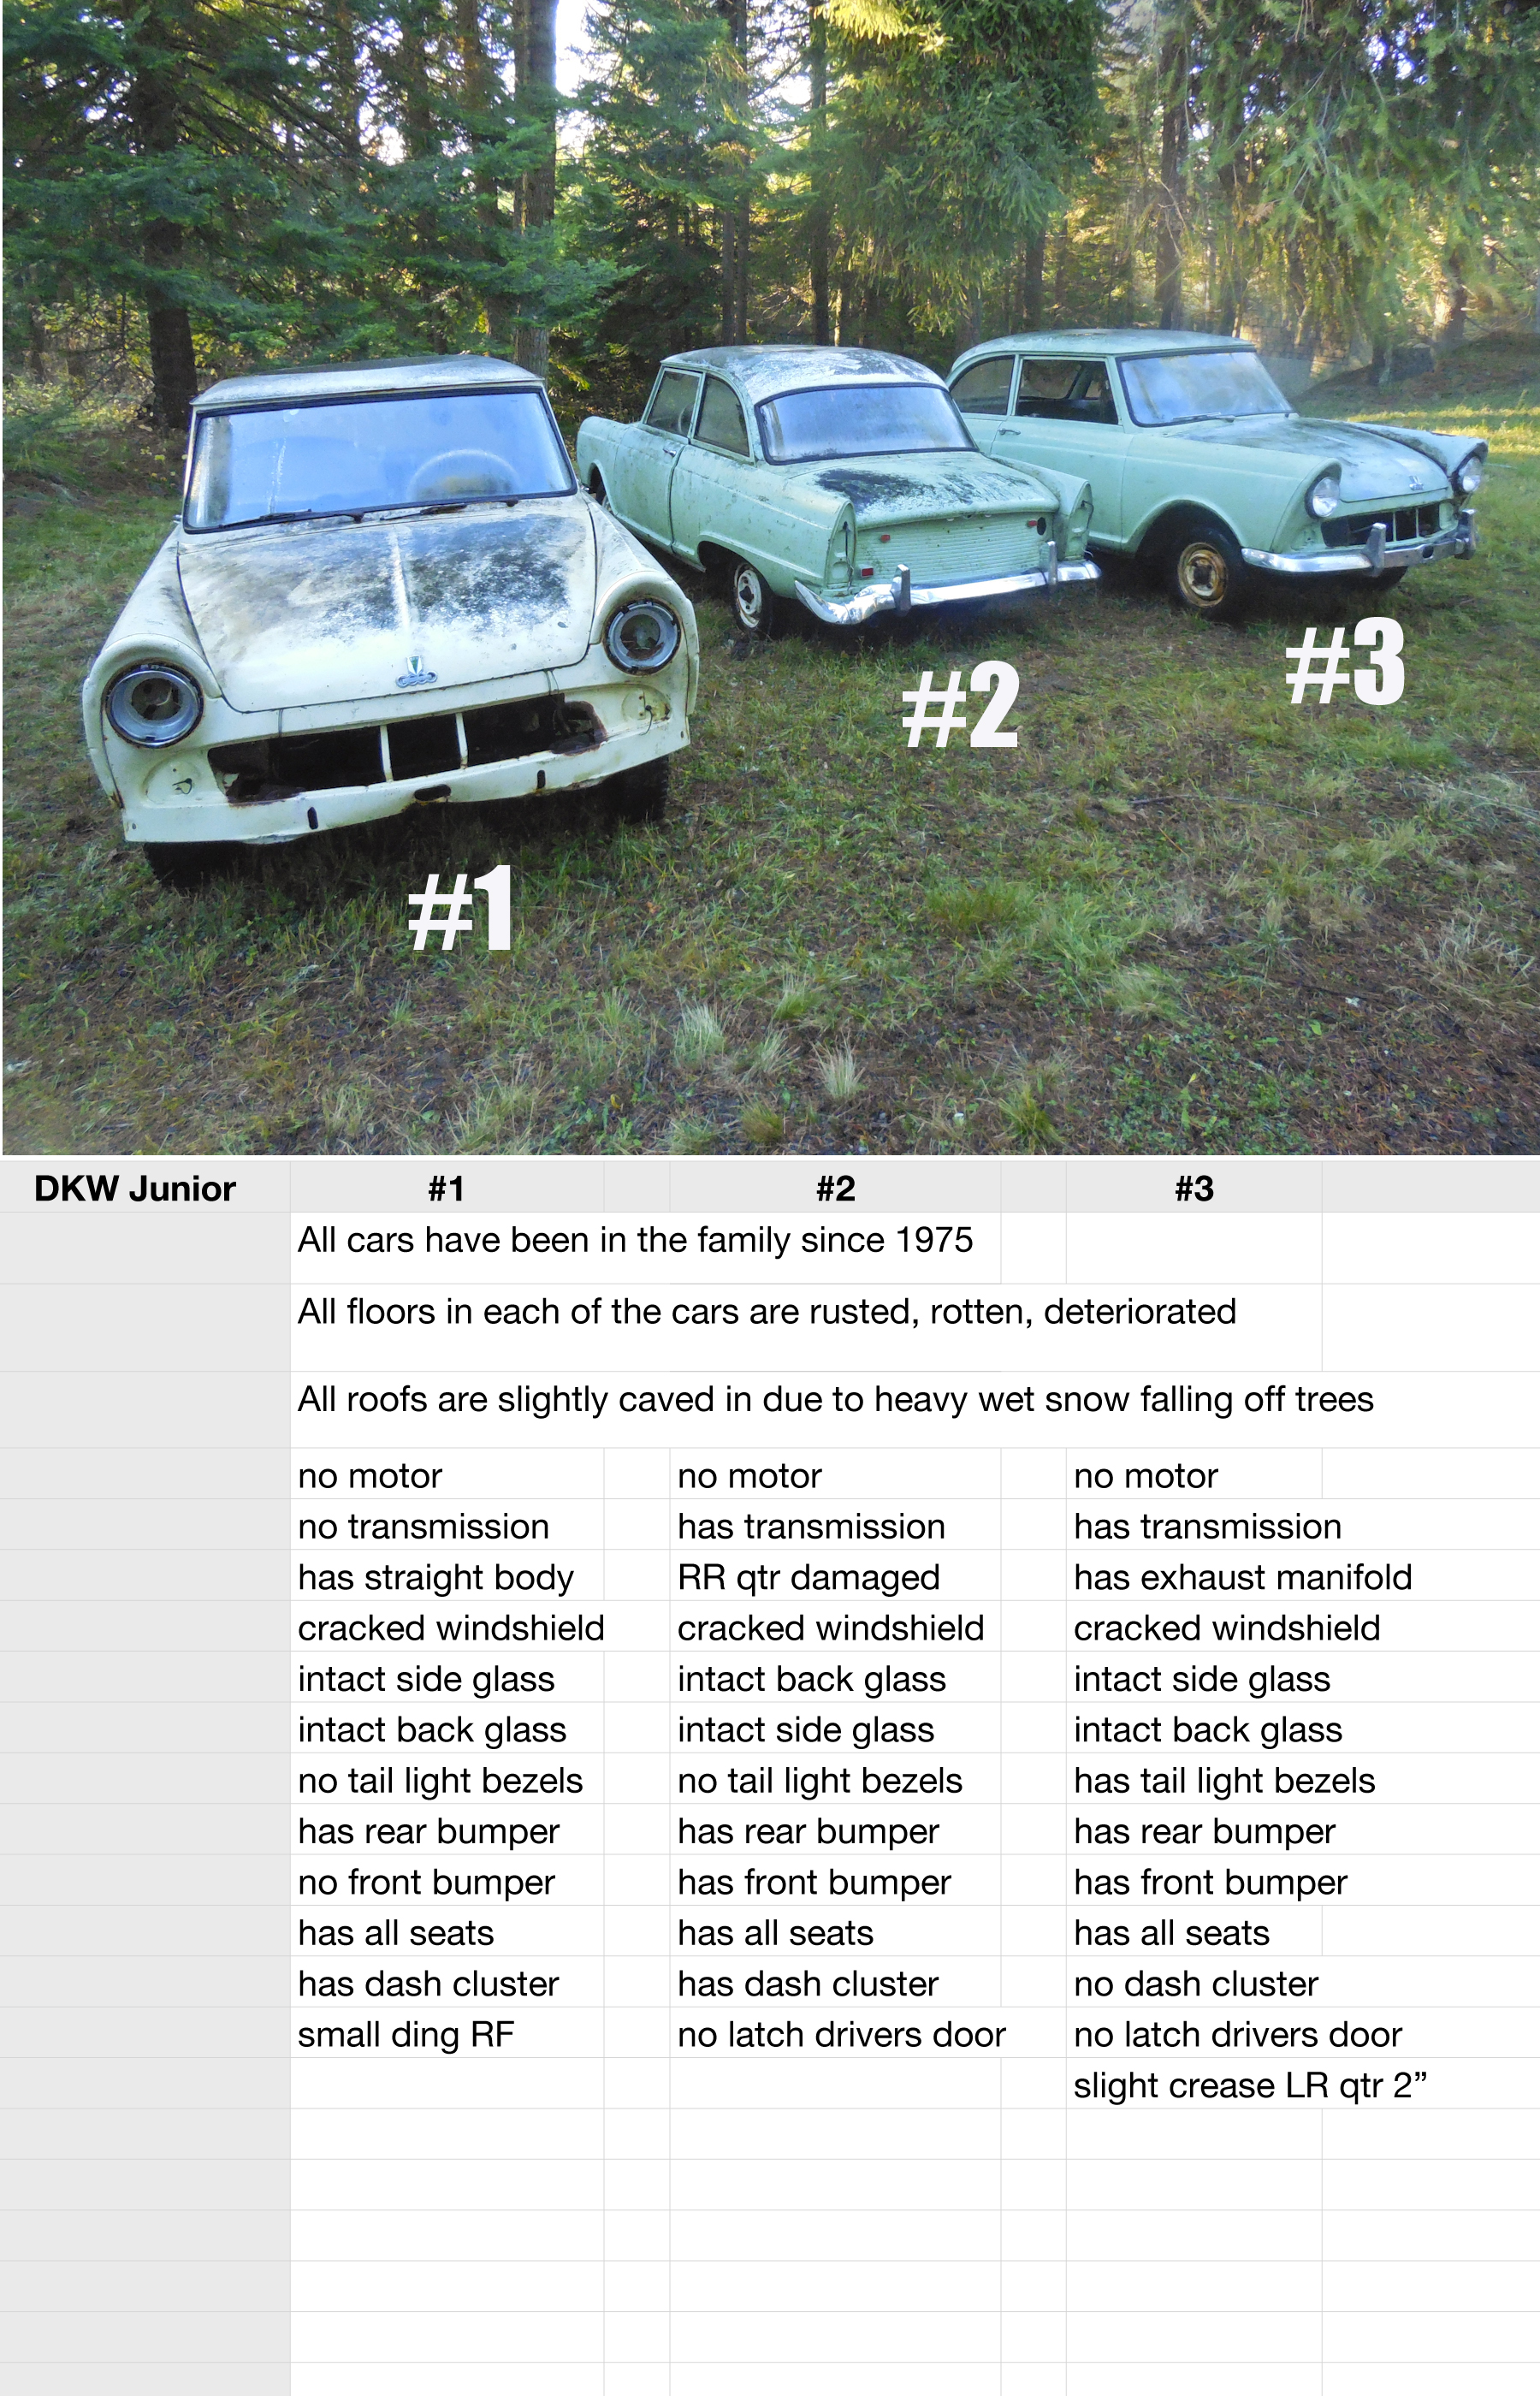 1962 Dkw Junior X3 For Sale Cars For Sale Antique